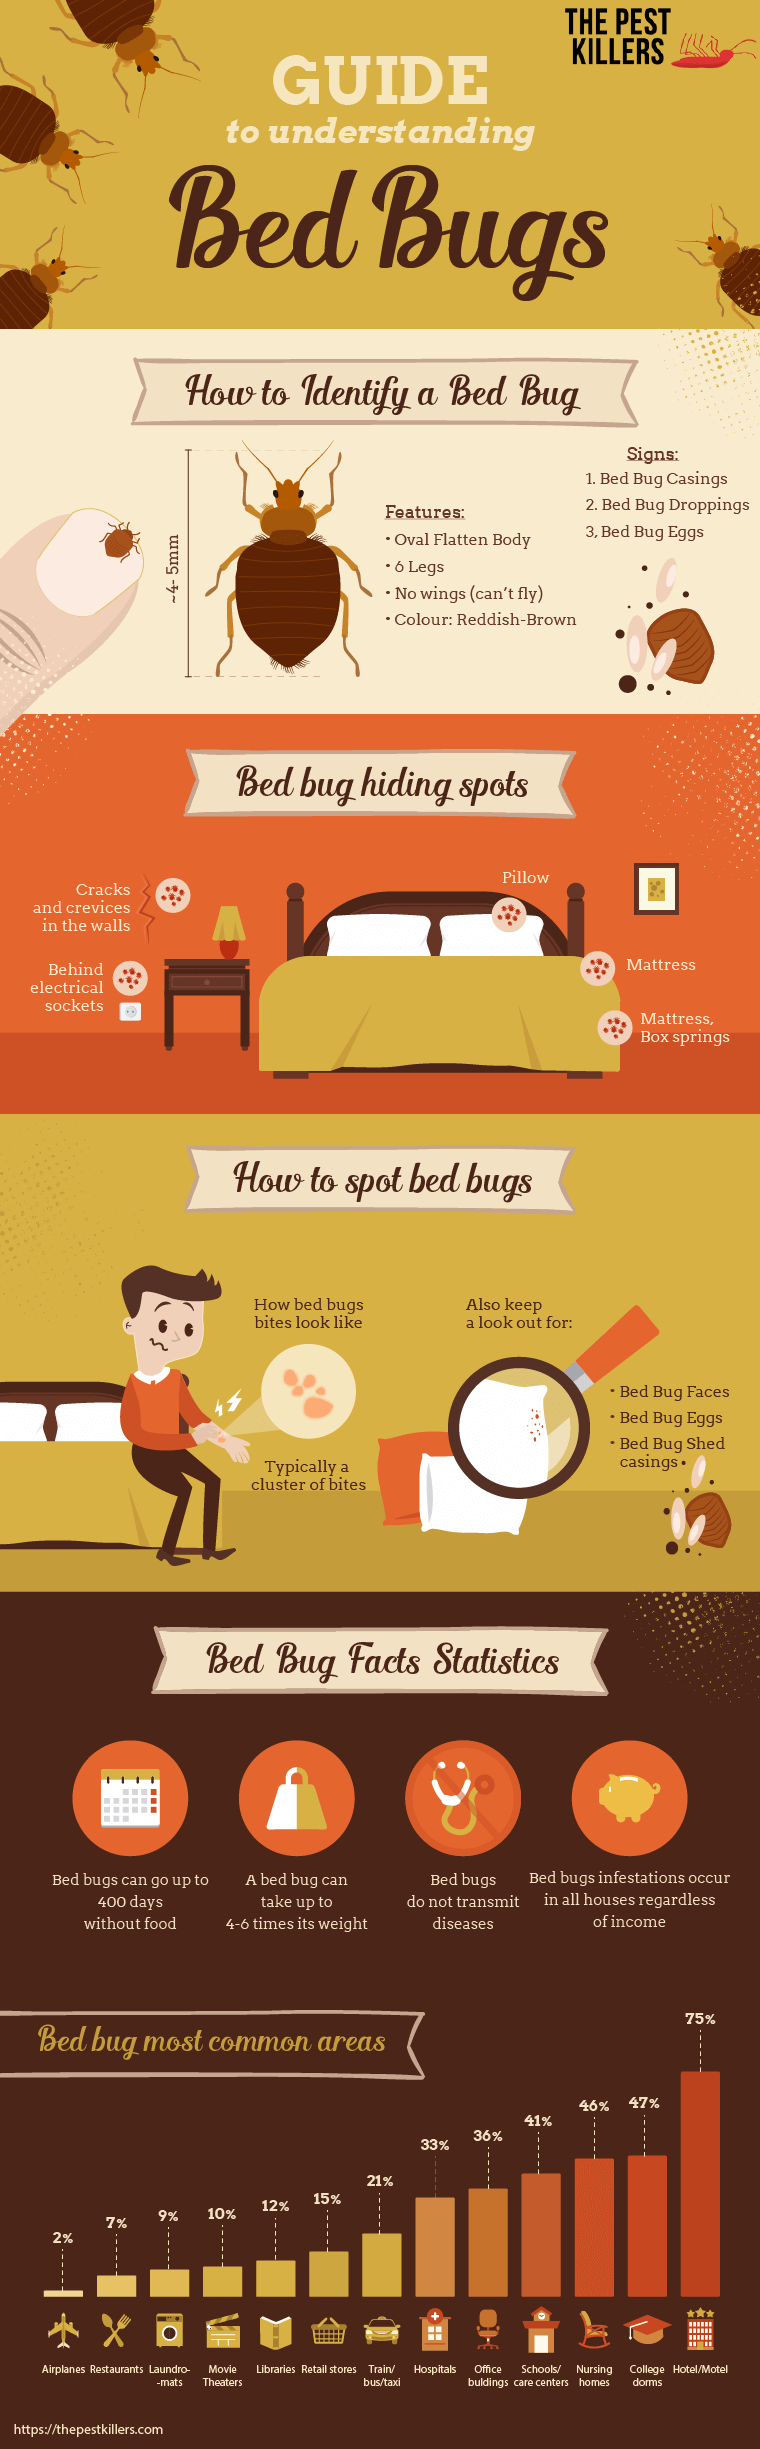 ThePestKillers Guide to Understanding Bed Bugs